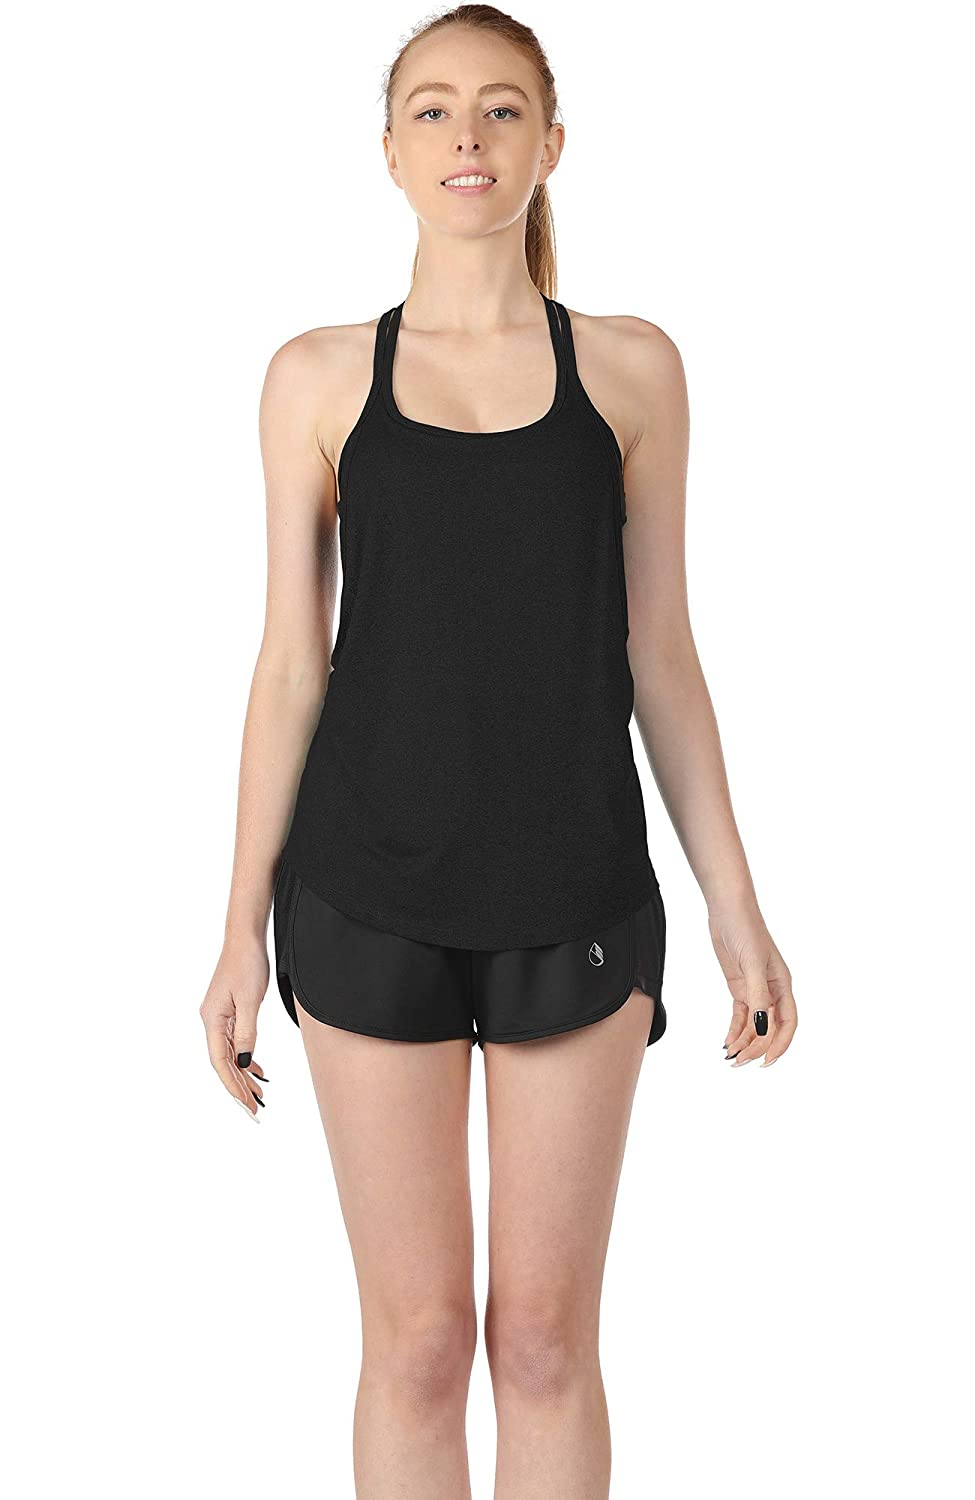 icyzone Workout Tank Tops with Built in Bra Womens Strappy Athletic Yoga Tops Running Exercise Gym Shirts